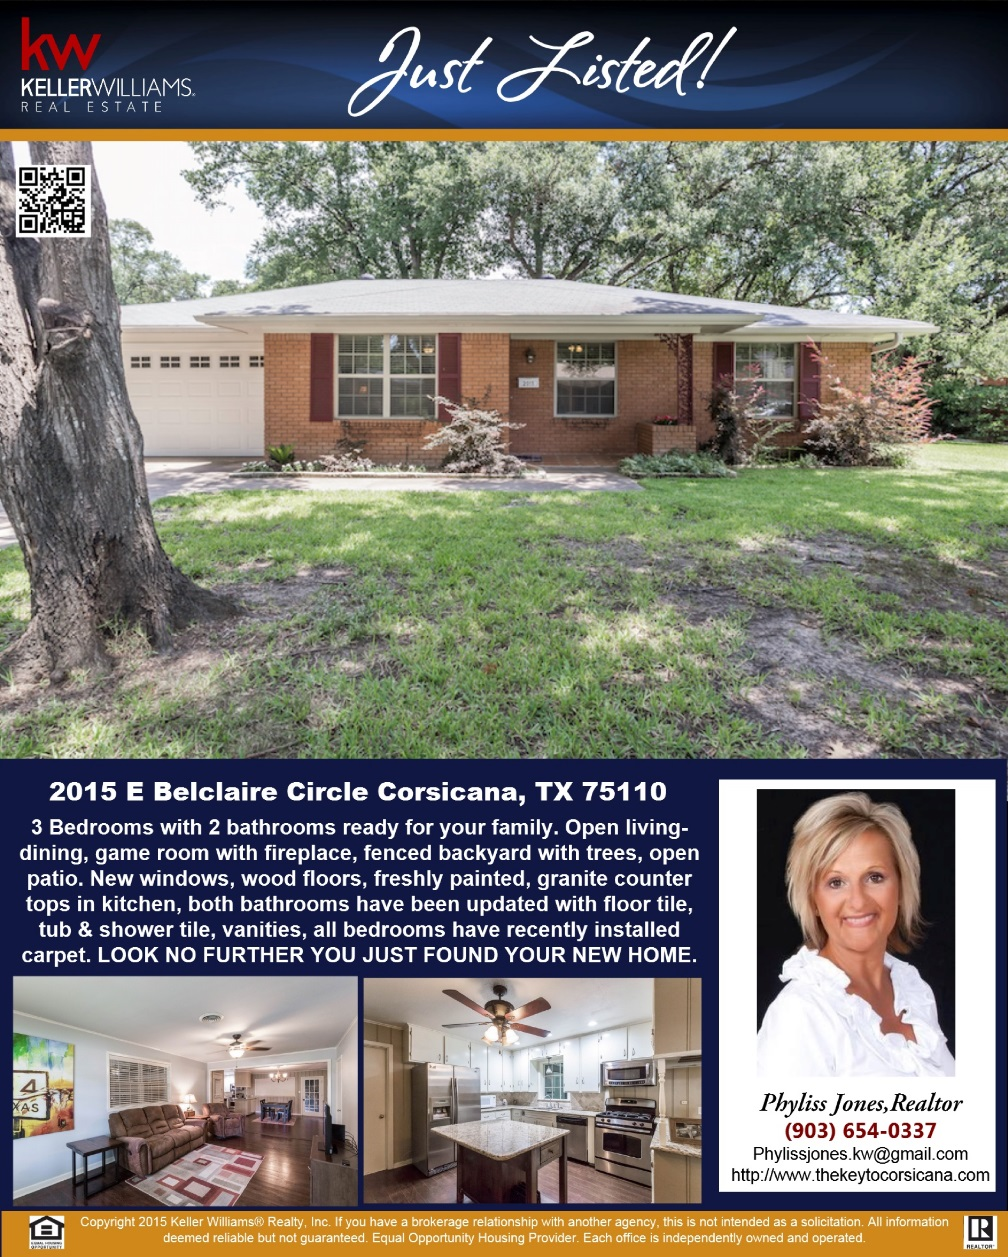 JUST LISTED! LOOK NO FURTHER YOU JUST FOUND YOUR NEW HOME! :) Please call me for more information. Phyliss Jones, Realtor (903) 654-0337.   #Newlisting #Kw #Justlisted #Kellerwilliamsarlington #Homeforsale #Bestdeal #Corsicanahomeforsale